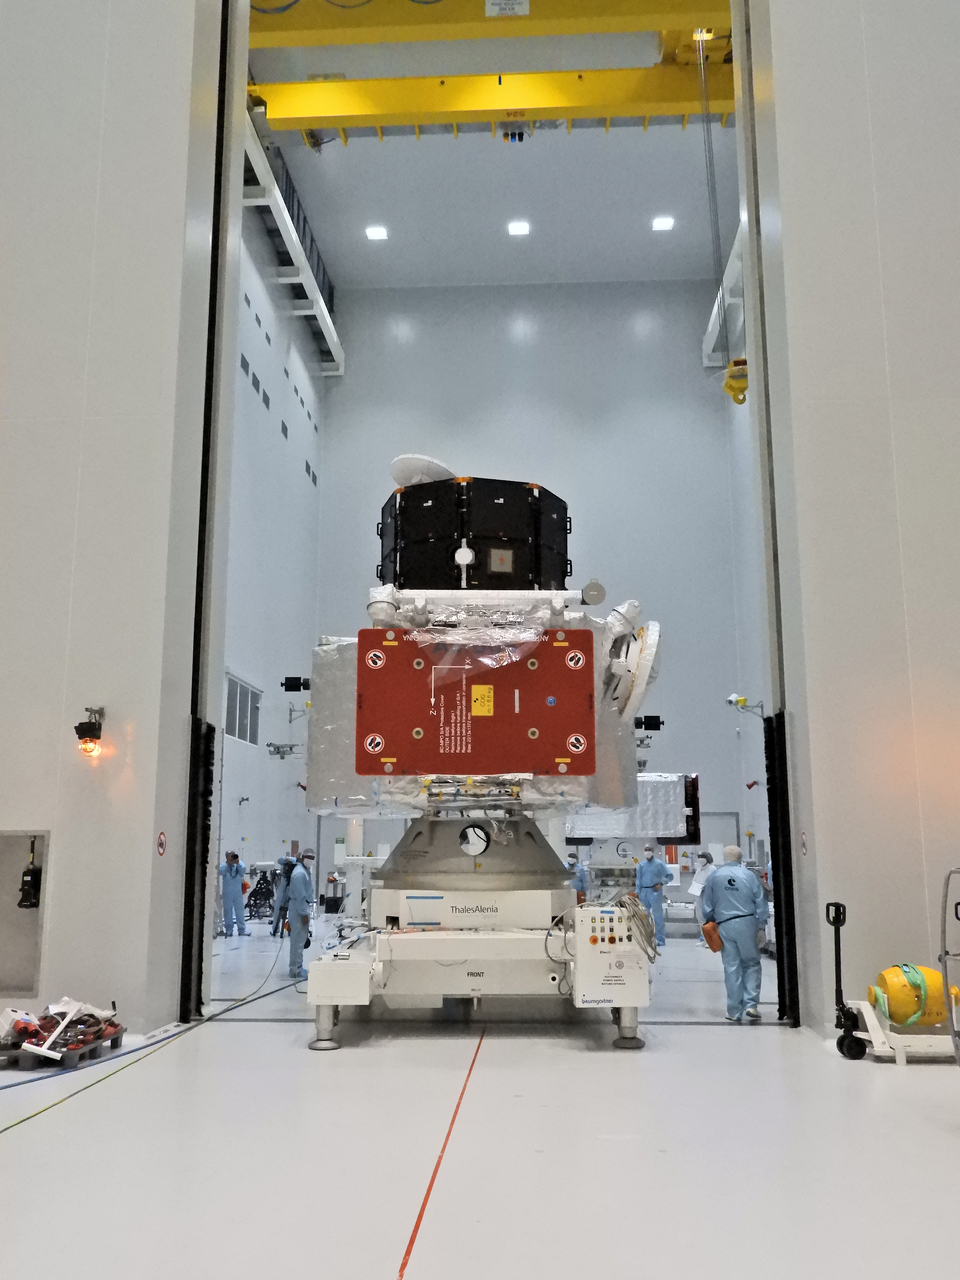 1567214076483-BepiColombo_ministack_on_the_move_4_1280.jpg